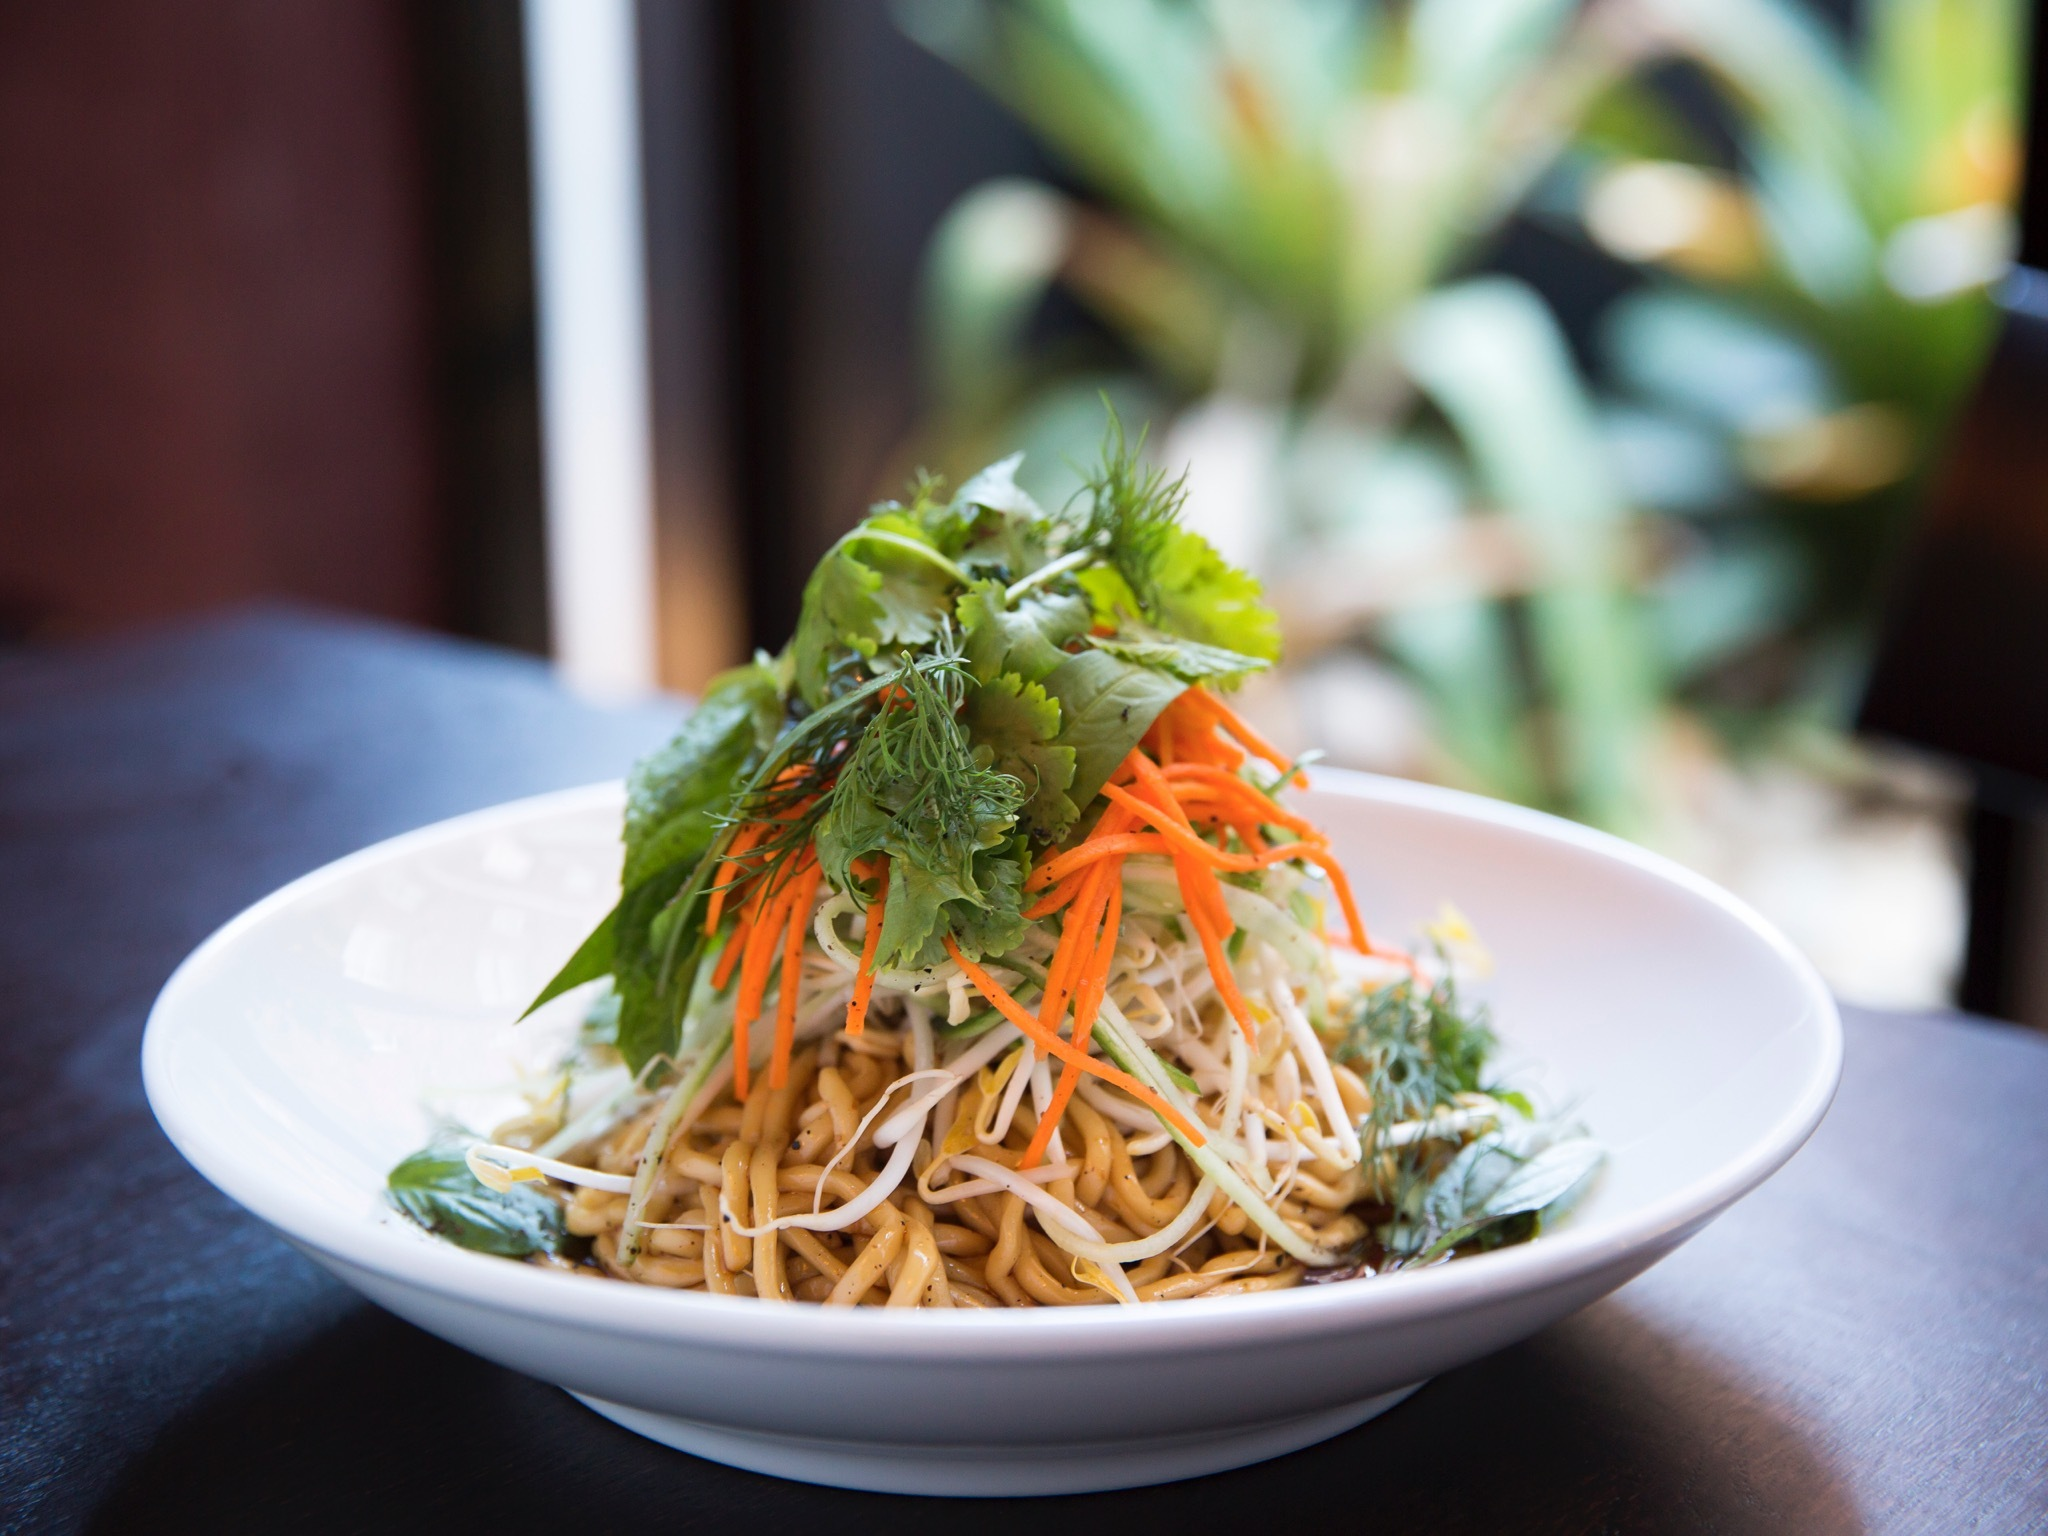 A shot of the steamed hokkien noodles with carrot and bean shoot